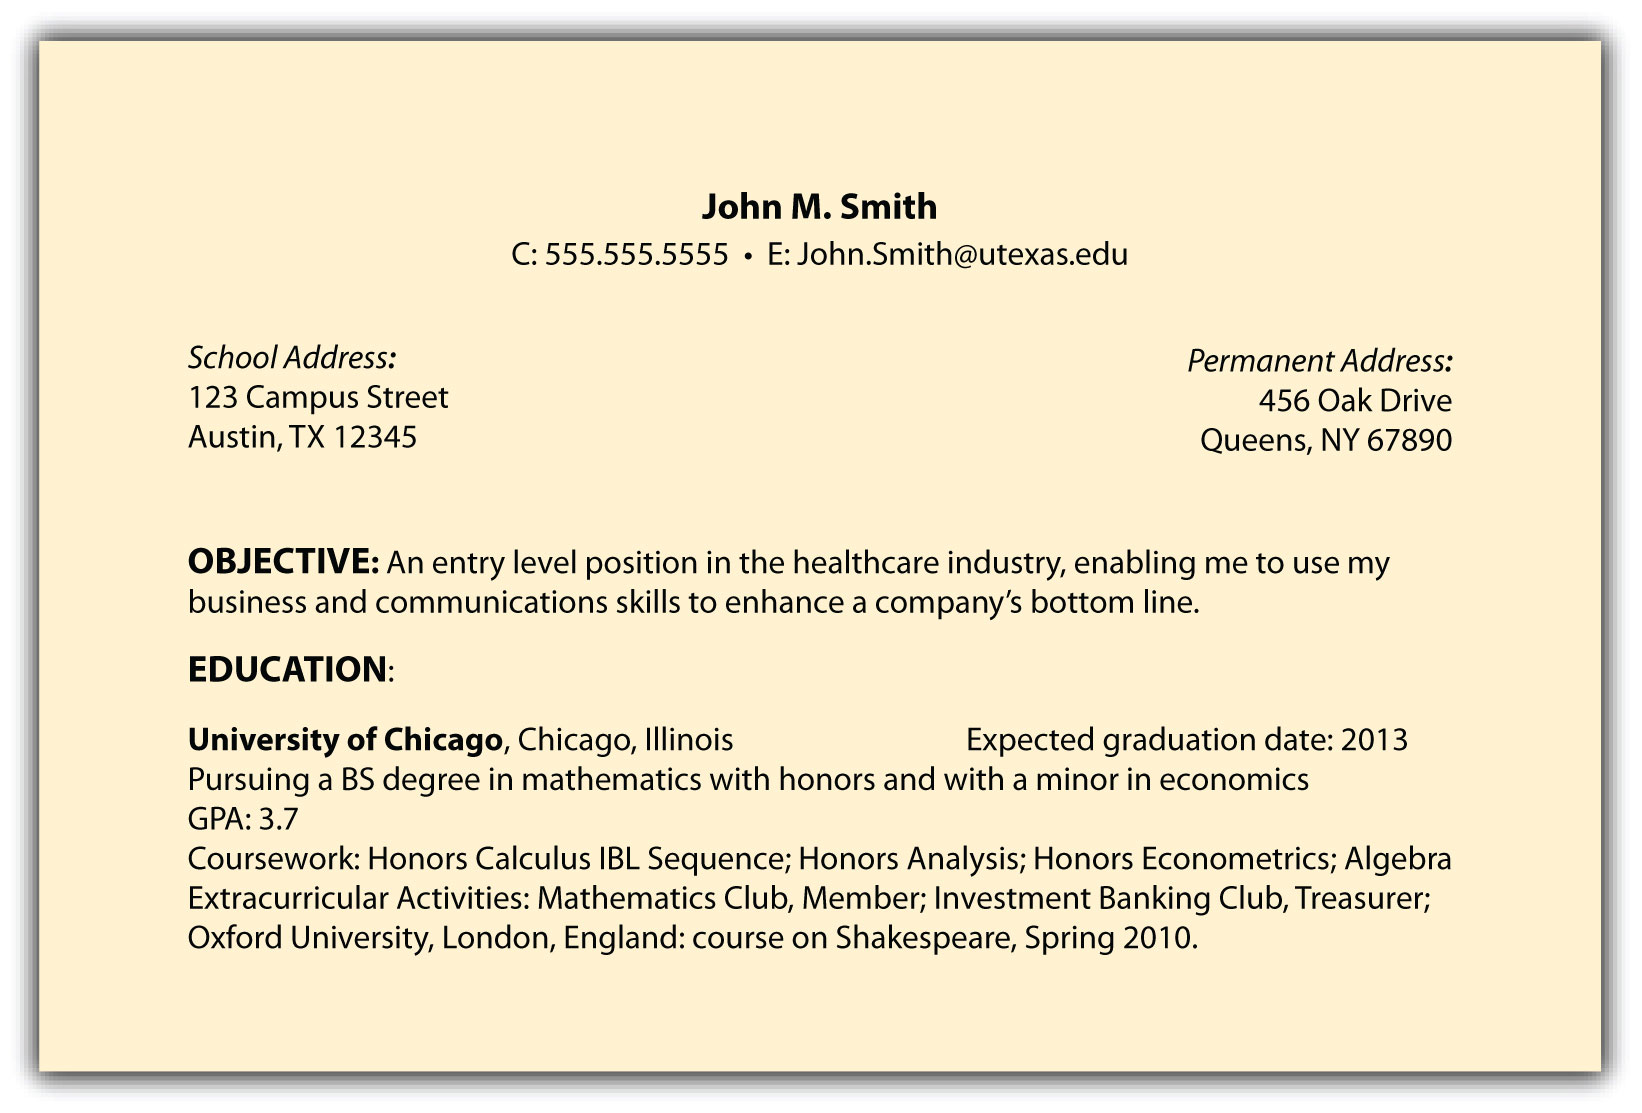 text resume sample october simple objective in culverhouse template email for sending h1b Resume Simple Objective In Resume Sample